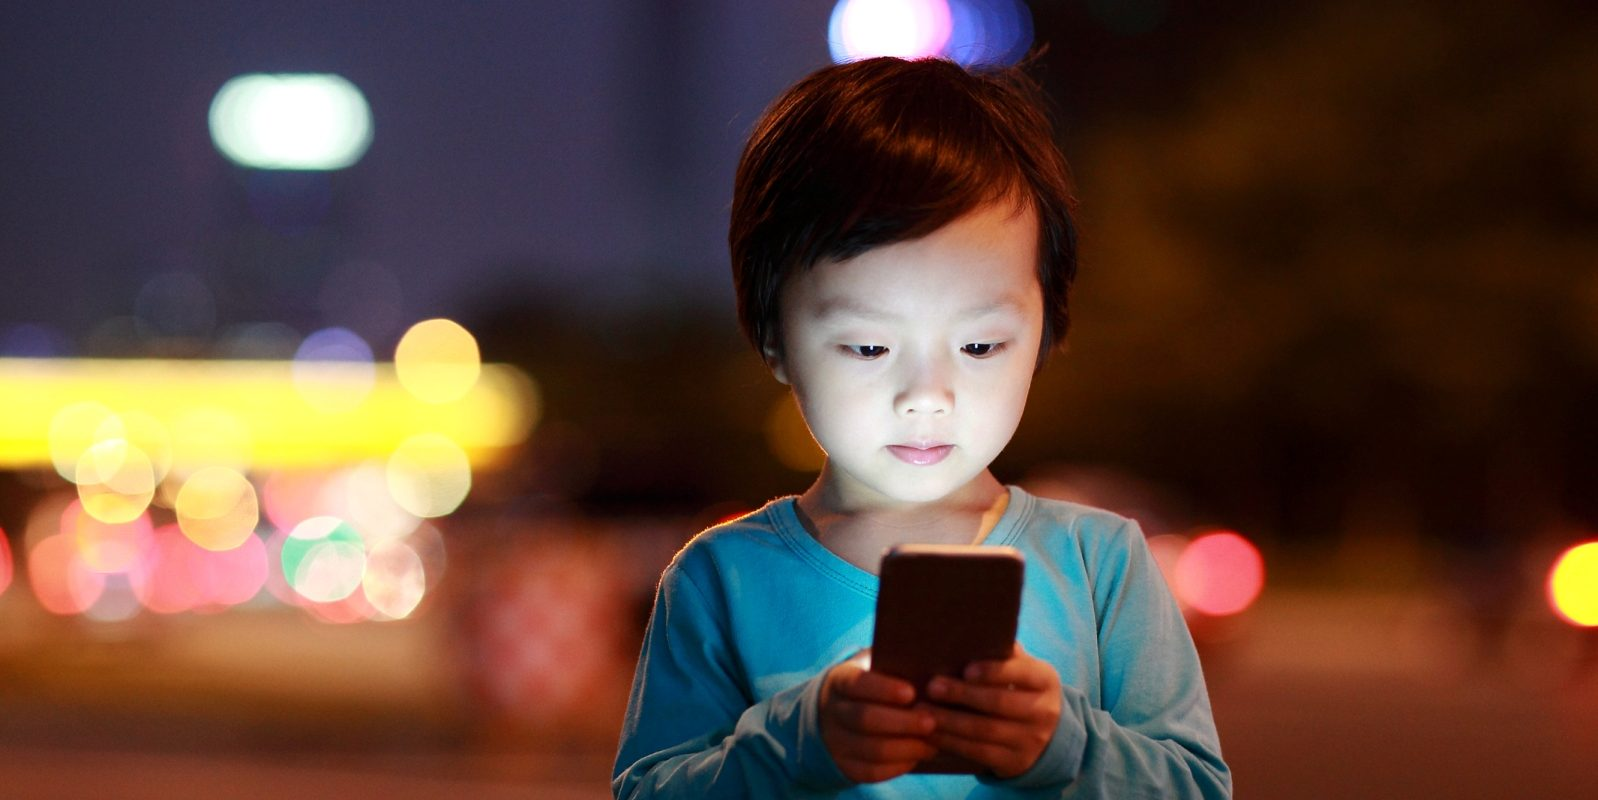 New Screen Time Guidelines and Tips to Unplug, by Michelle Kartan, MD, Powered by Nemours Children's Health System